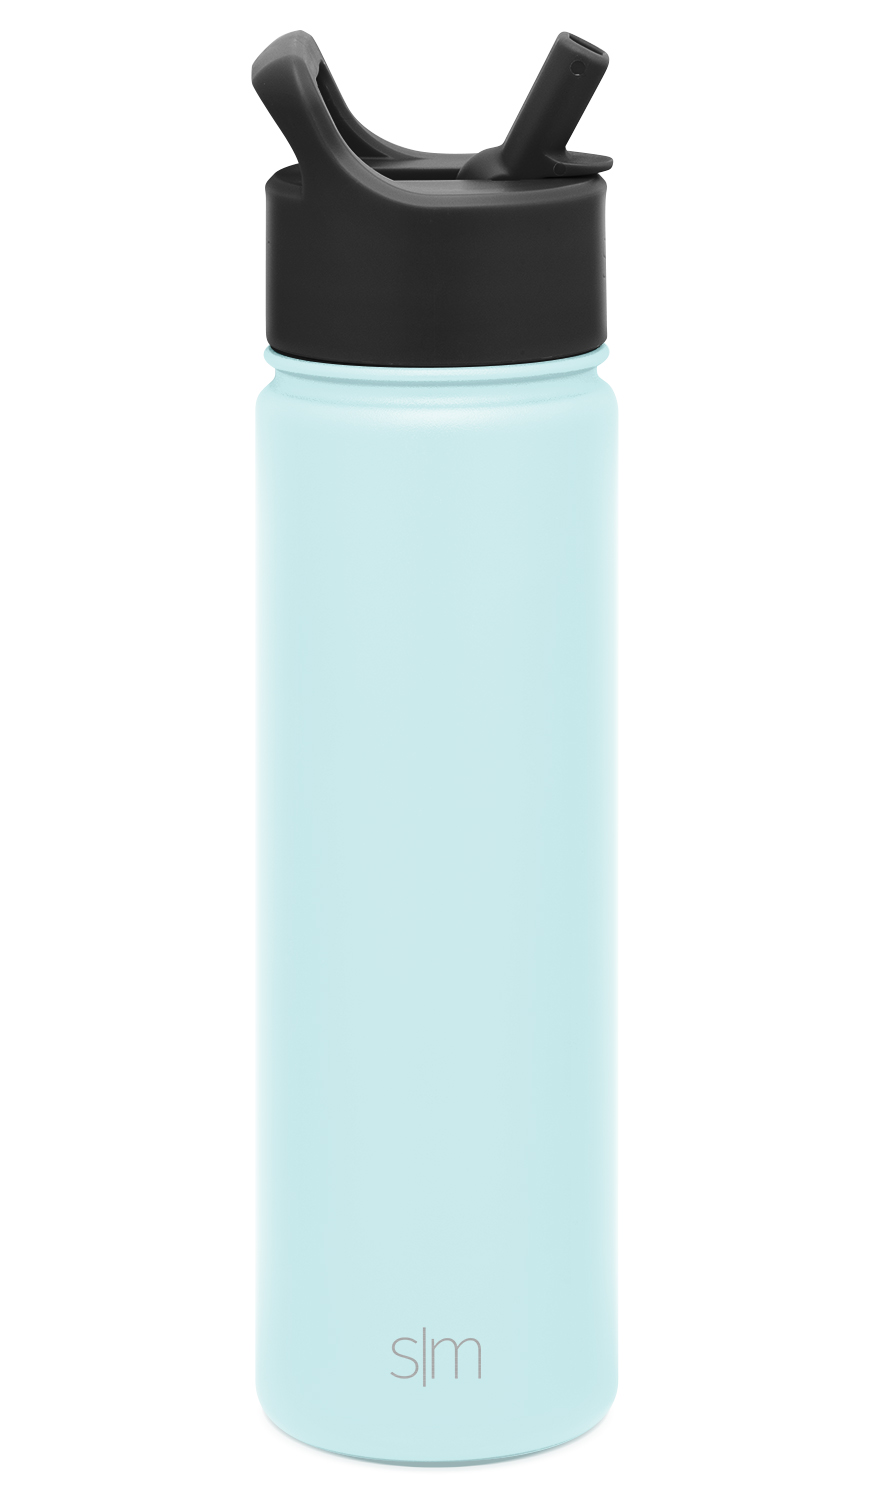 Simple-Modern-Summit-Water-Bottle-with-Straw-Lid-Vacuum-Insulated-Kid-039-s-Cup thumbnail 69